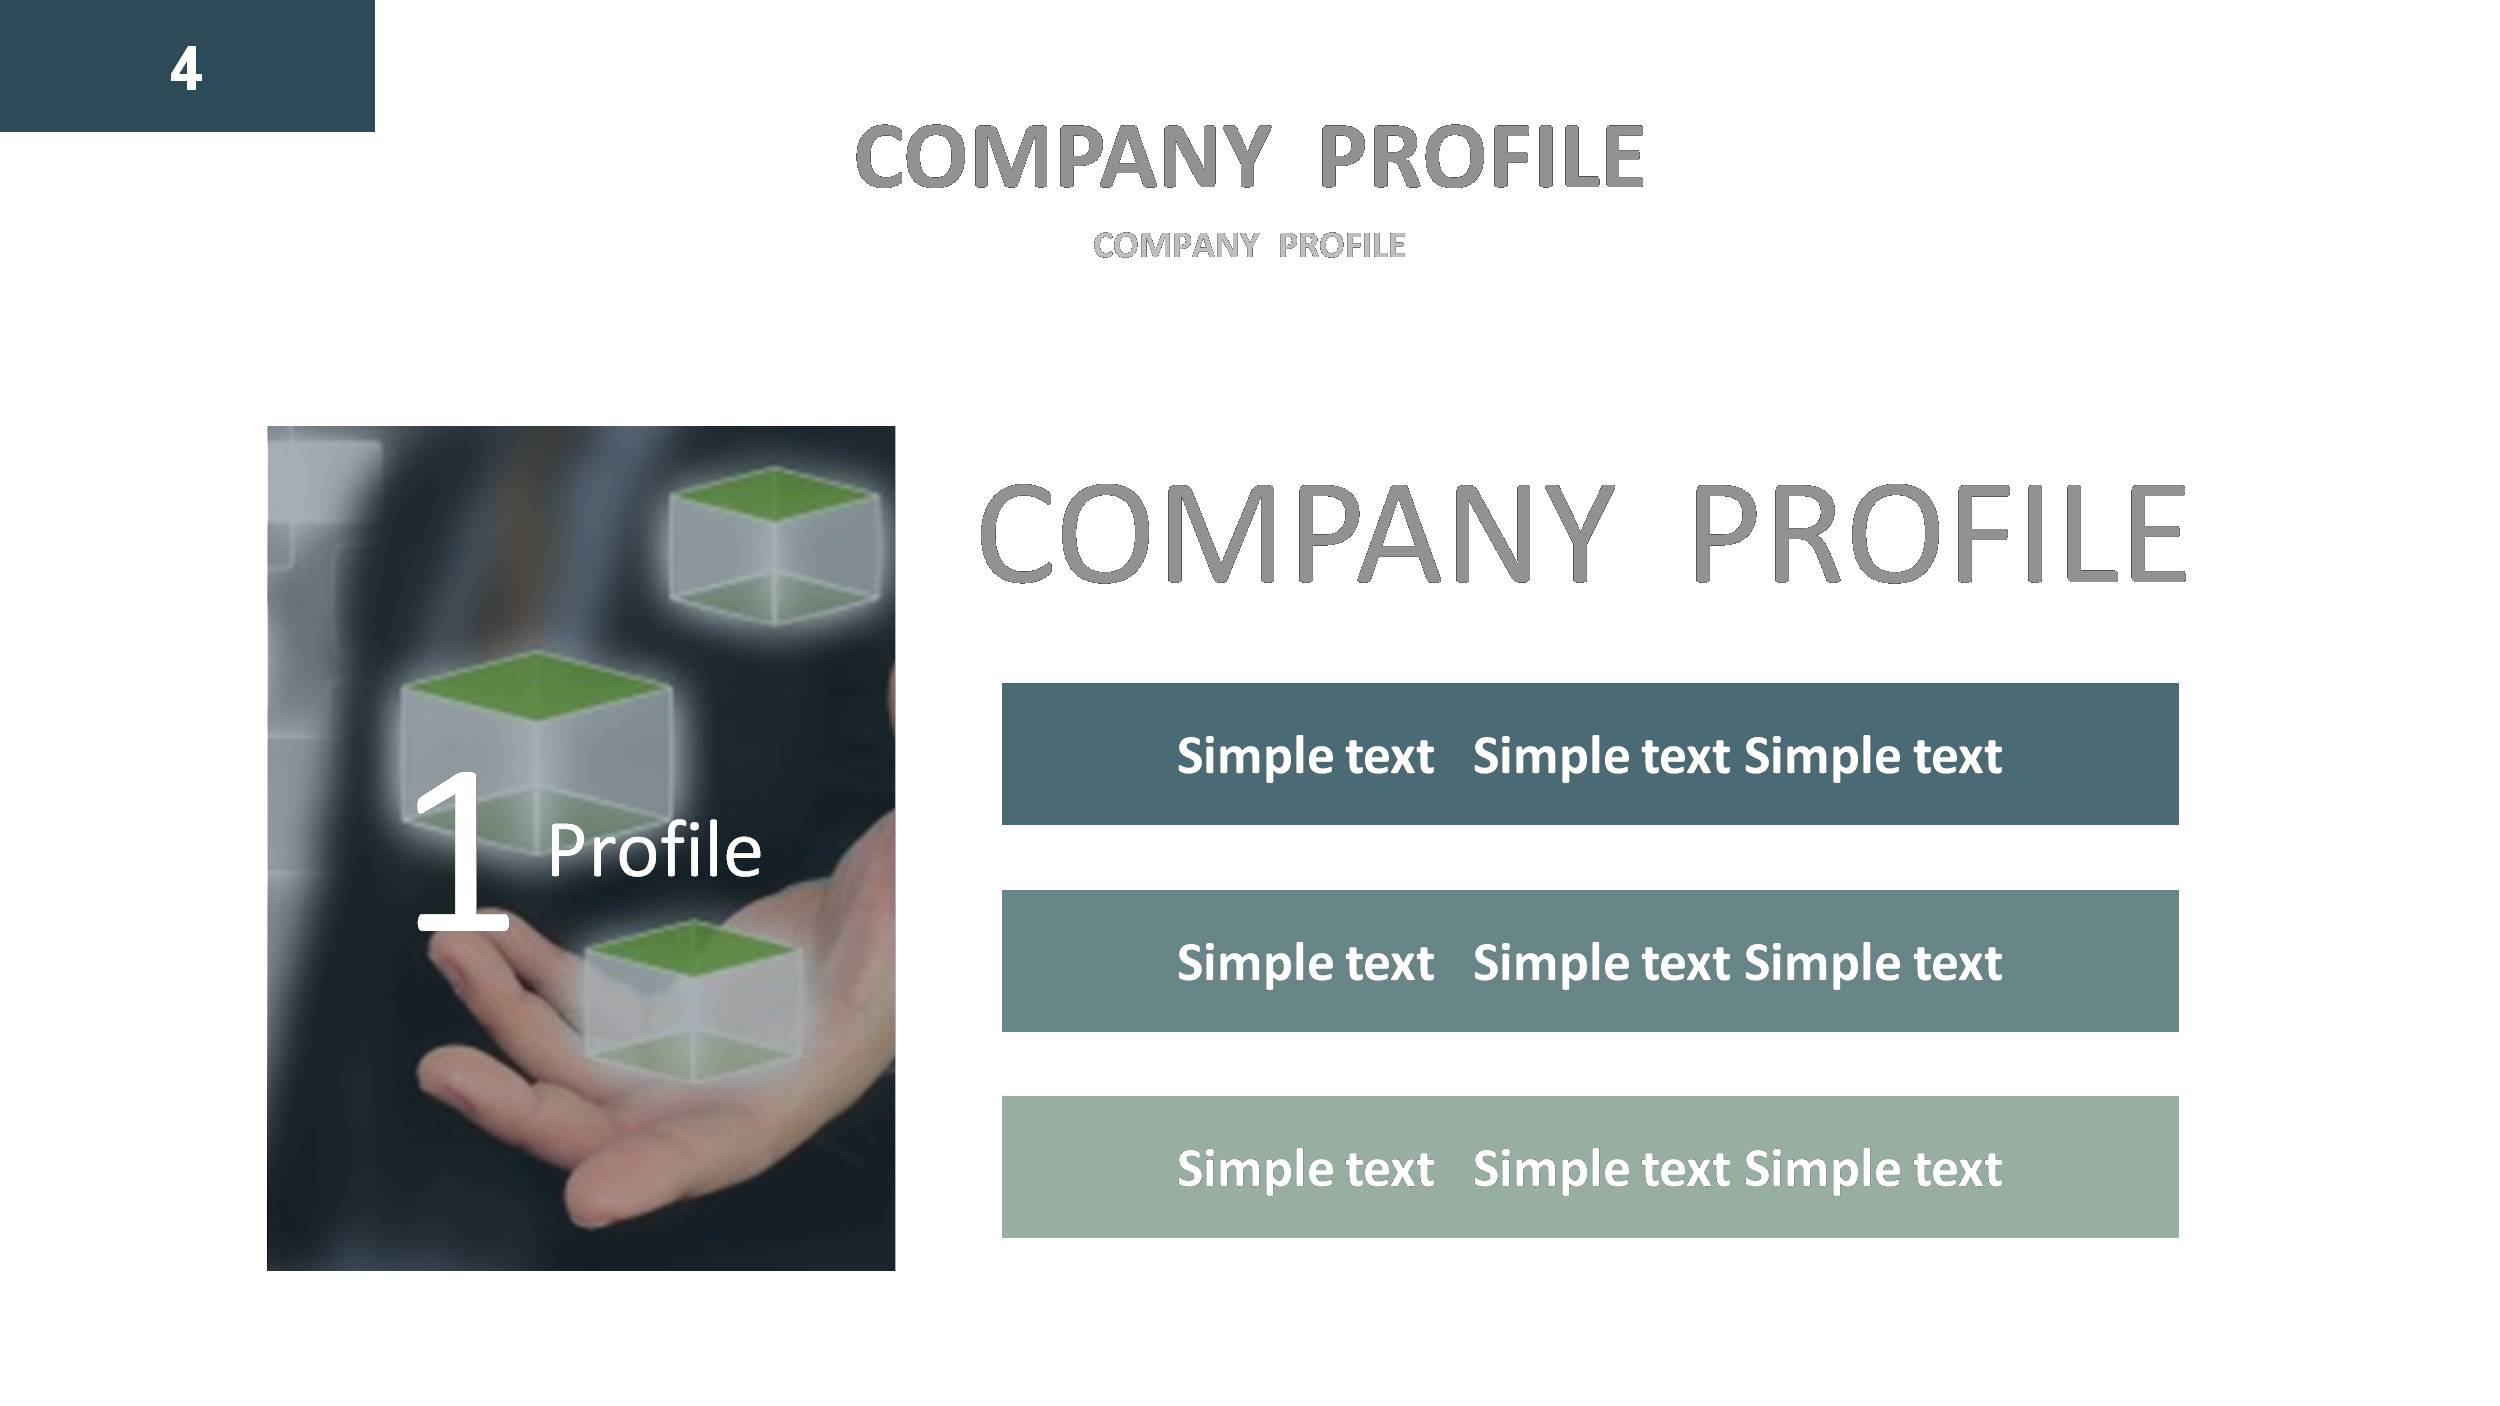 Company profile Google Slides Presentation Template by GardeniaDesign – Company Profile